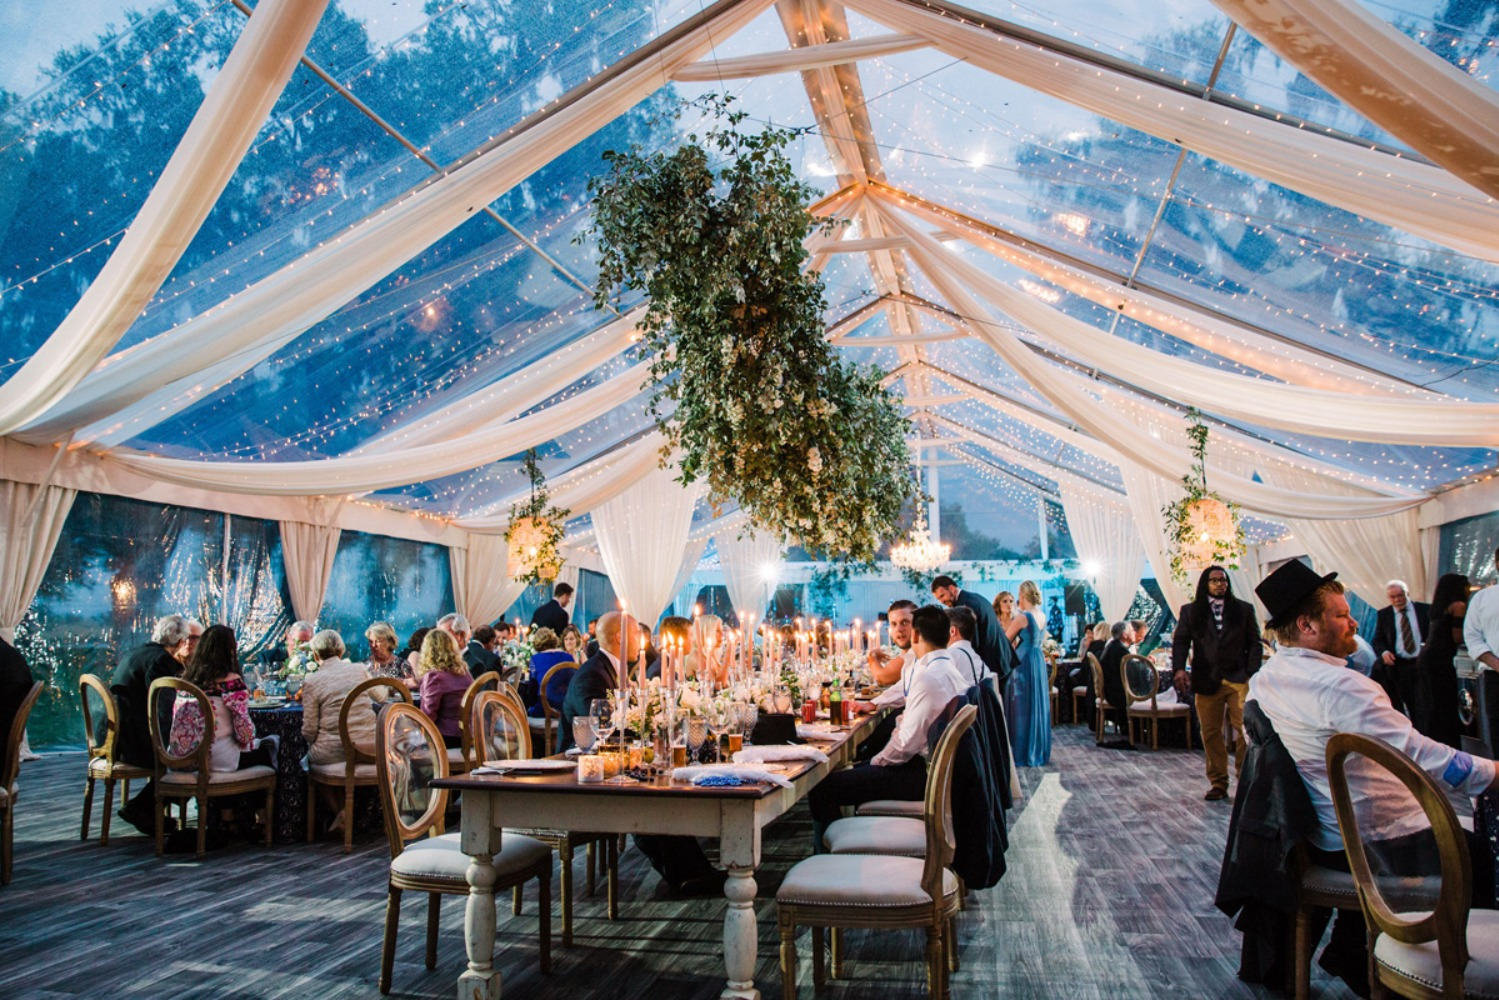 Dreamy tent wedding decor